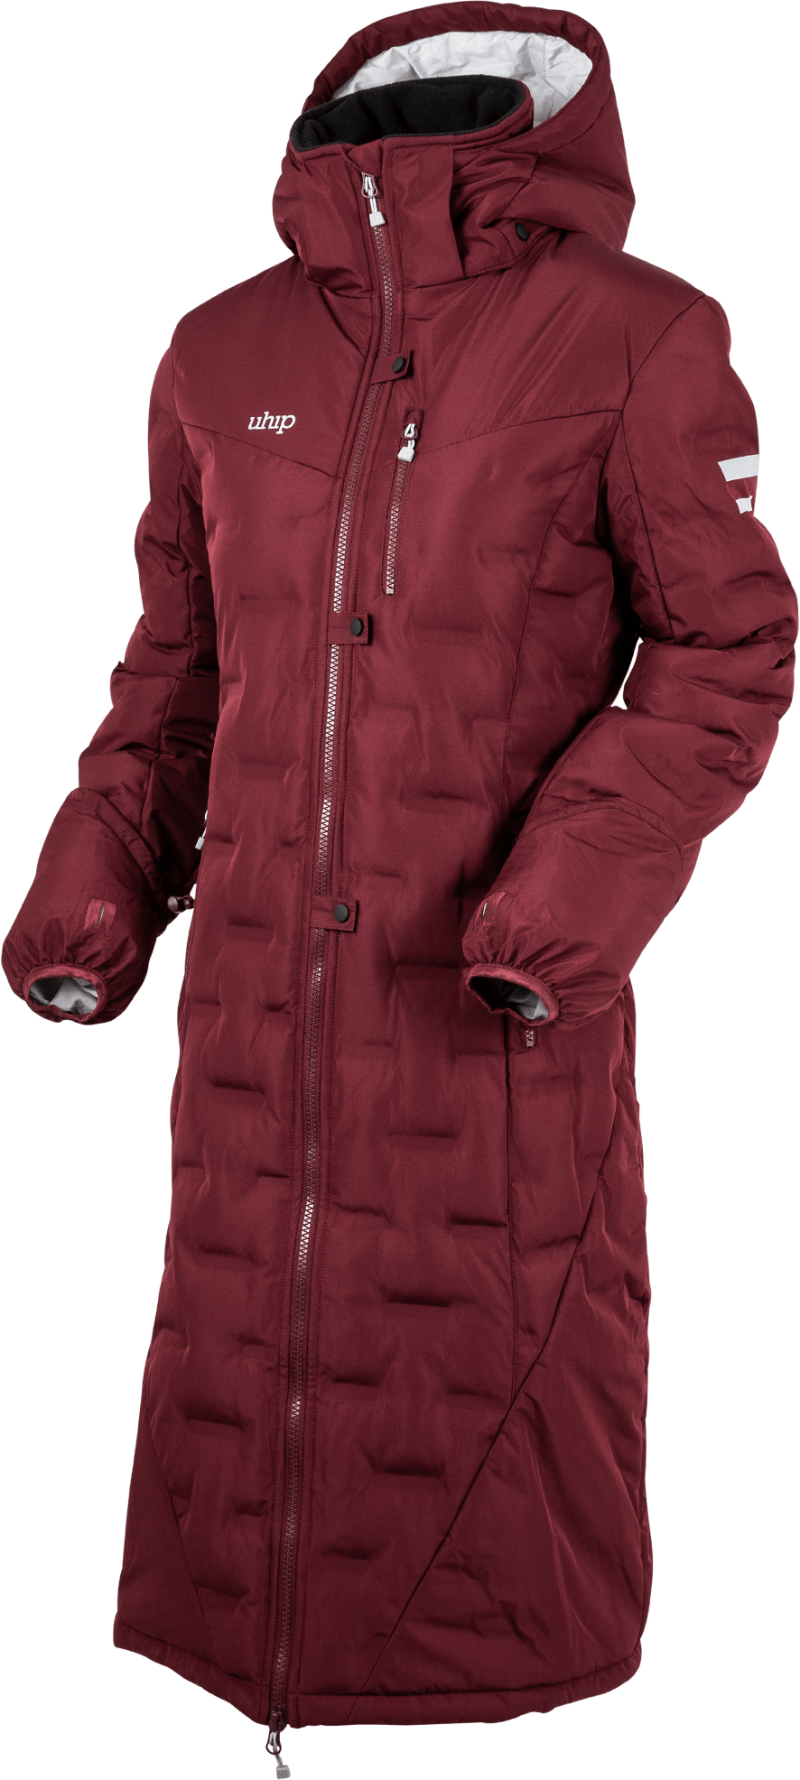 UHIP Ice Coat - Red